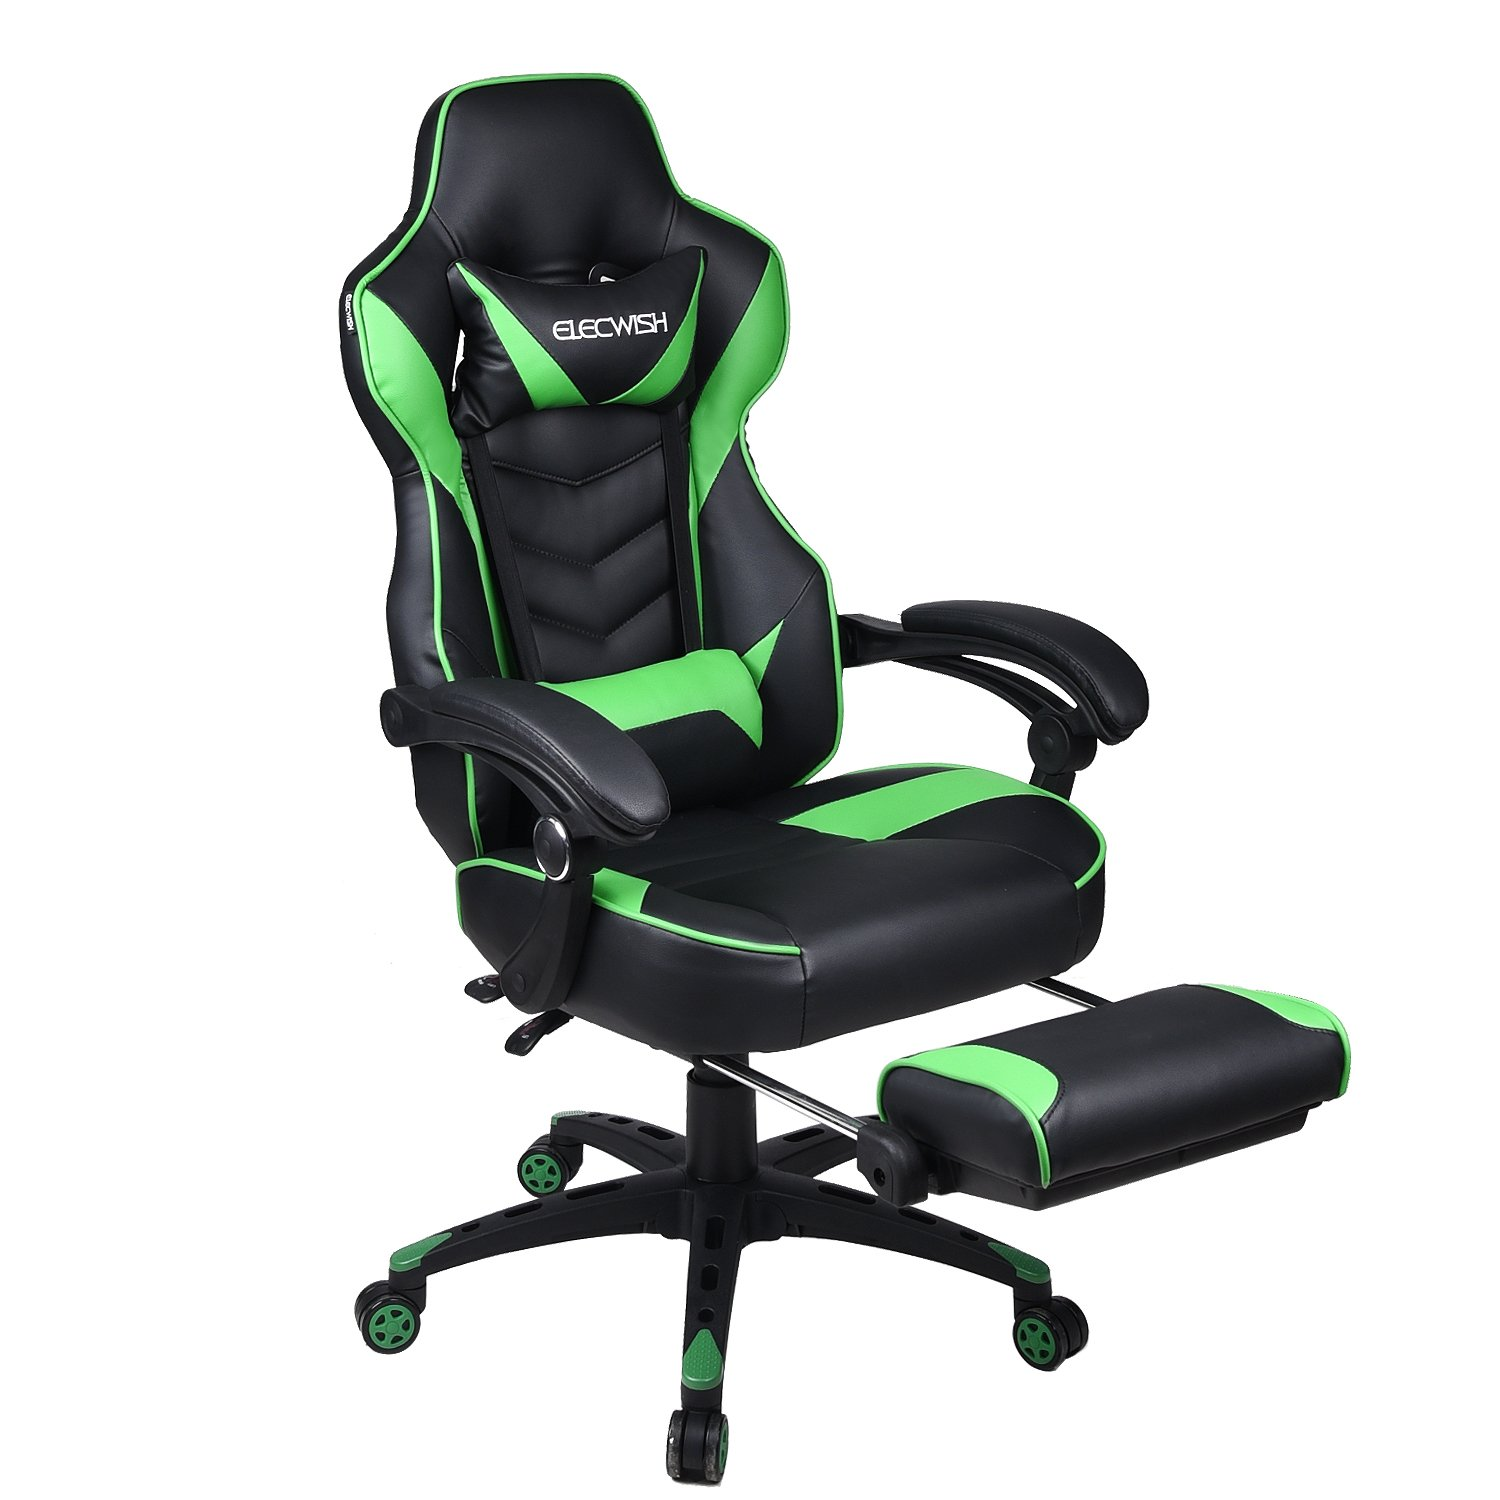 Gaming Chair Black Green for Adults with Footrest,High Back Swivel Computer Office Chair with Pillows and Lumber Support by PULUOMIS